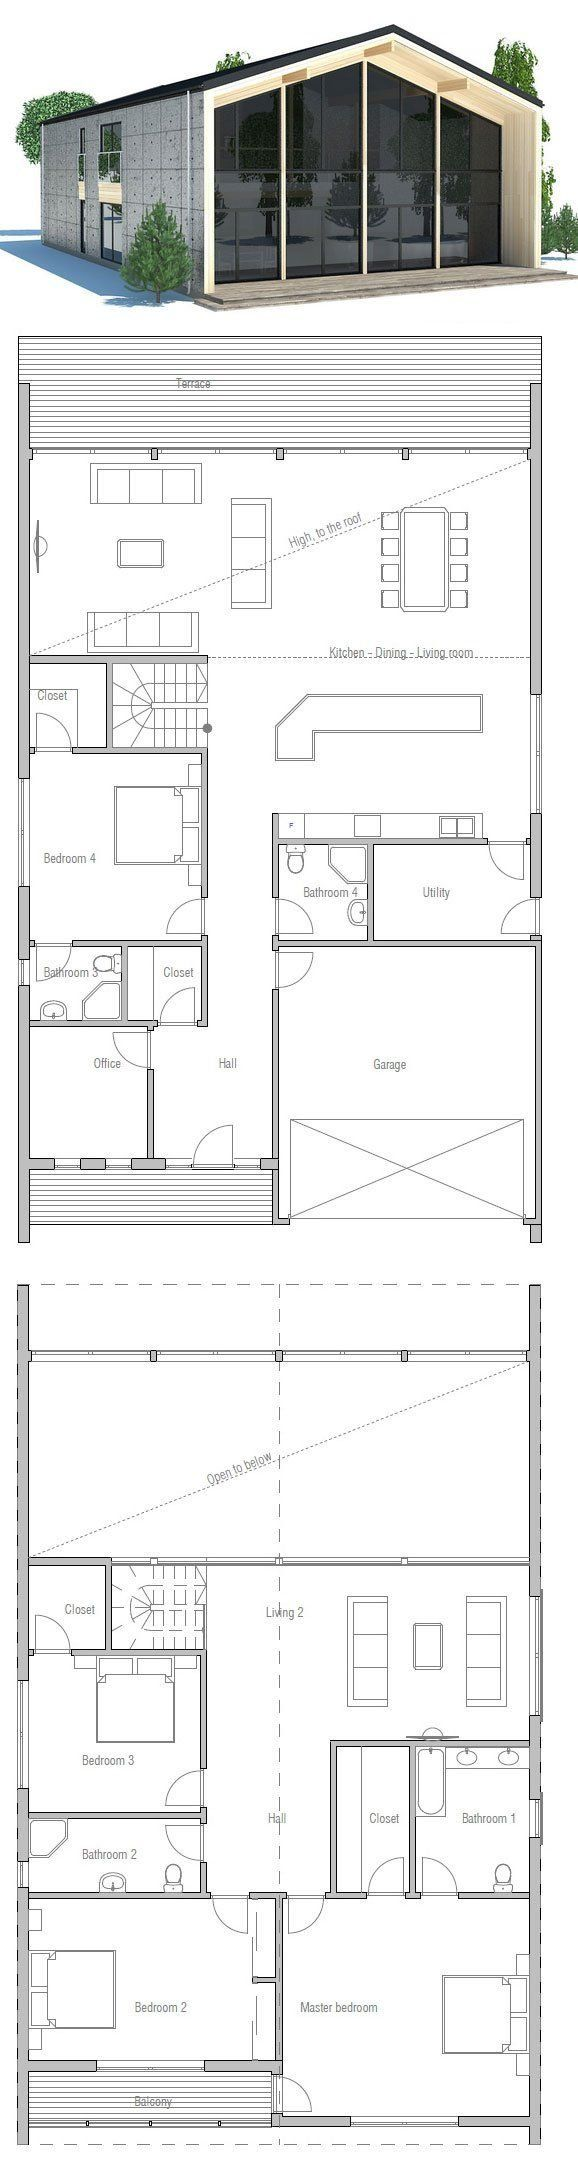 modern architecture floor plans. Plain Plans Contemporry House To Narrow Lot Modern Architecture Floor Plan From  ConceptHomecom For Architecture Plans E